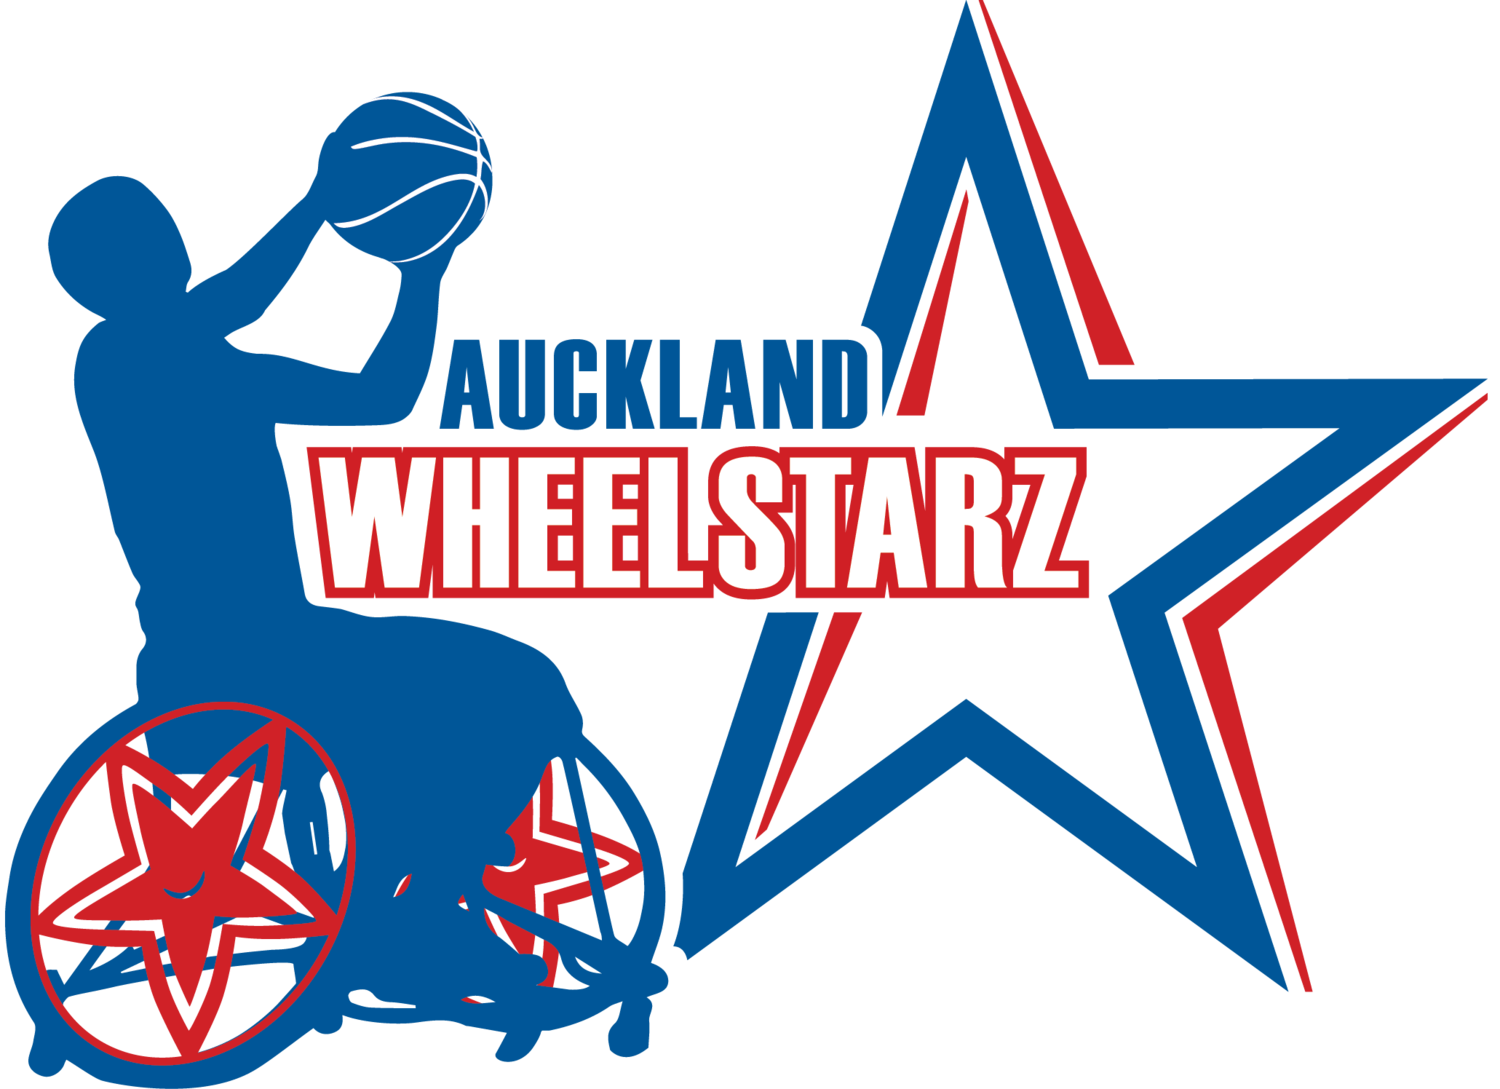 The Auckland WheelStarz